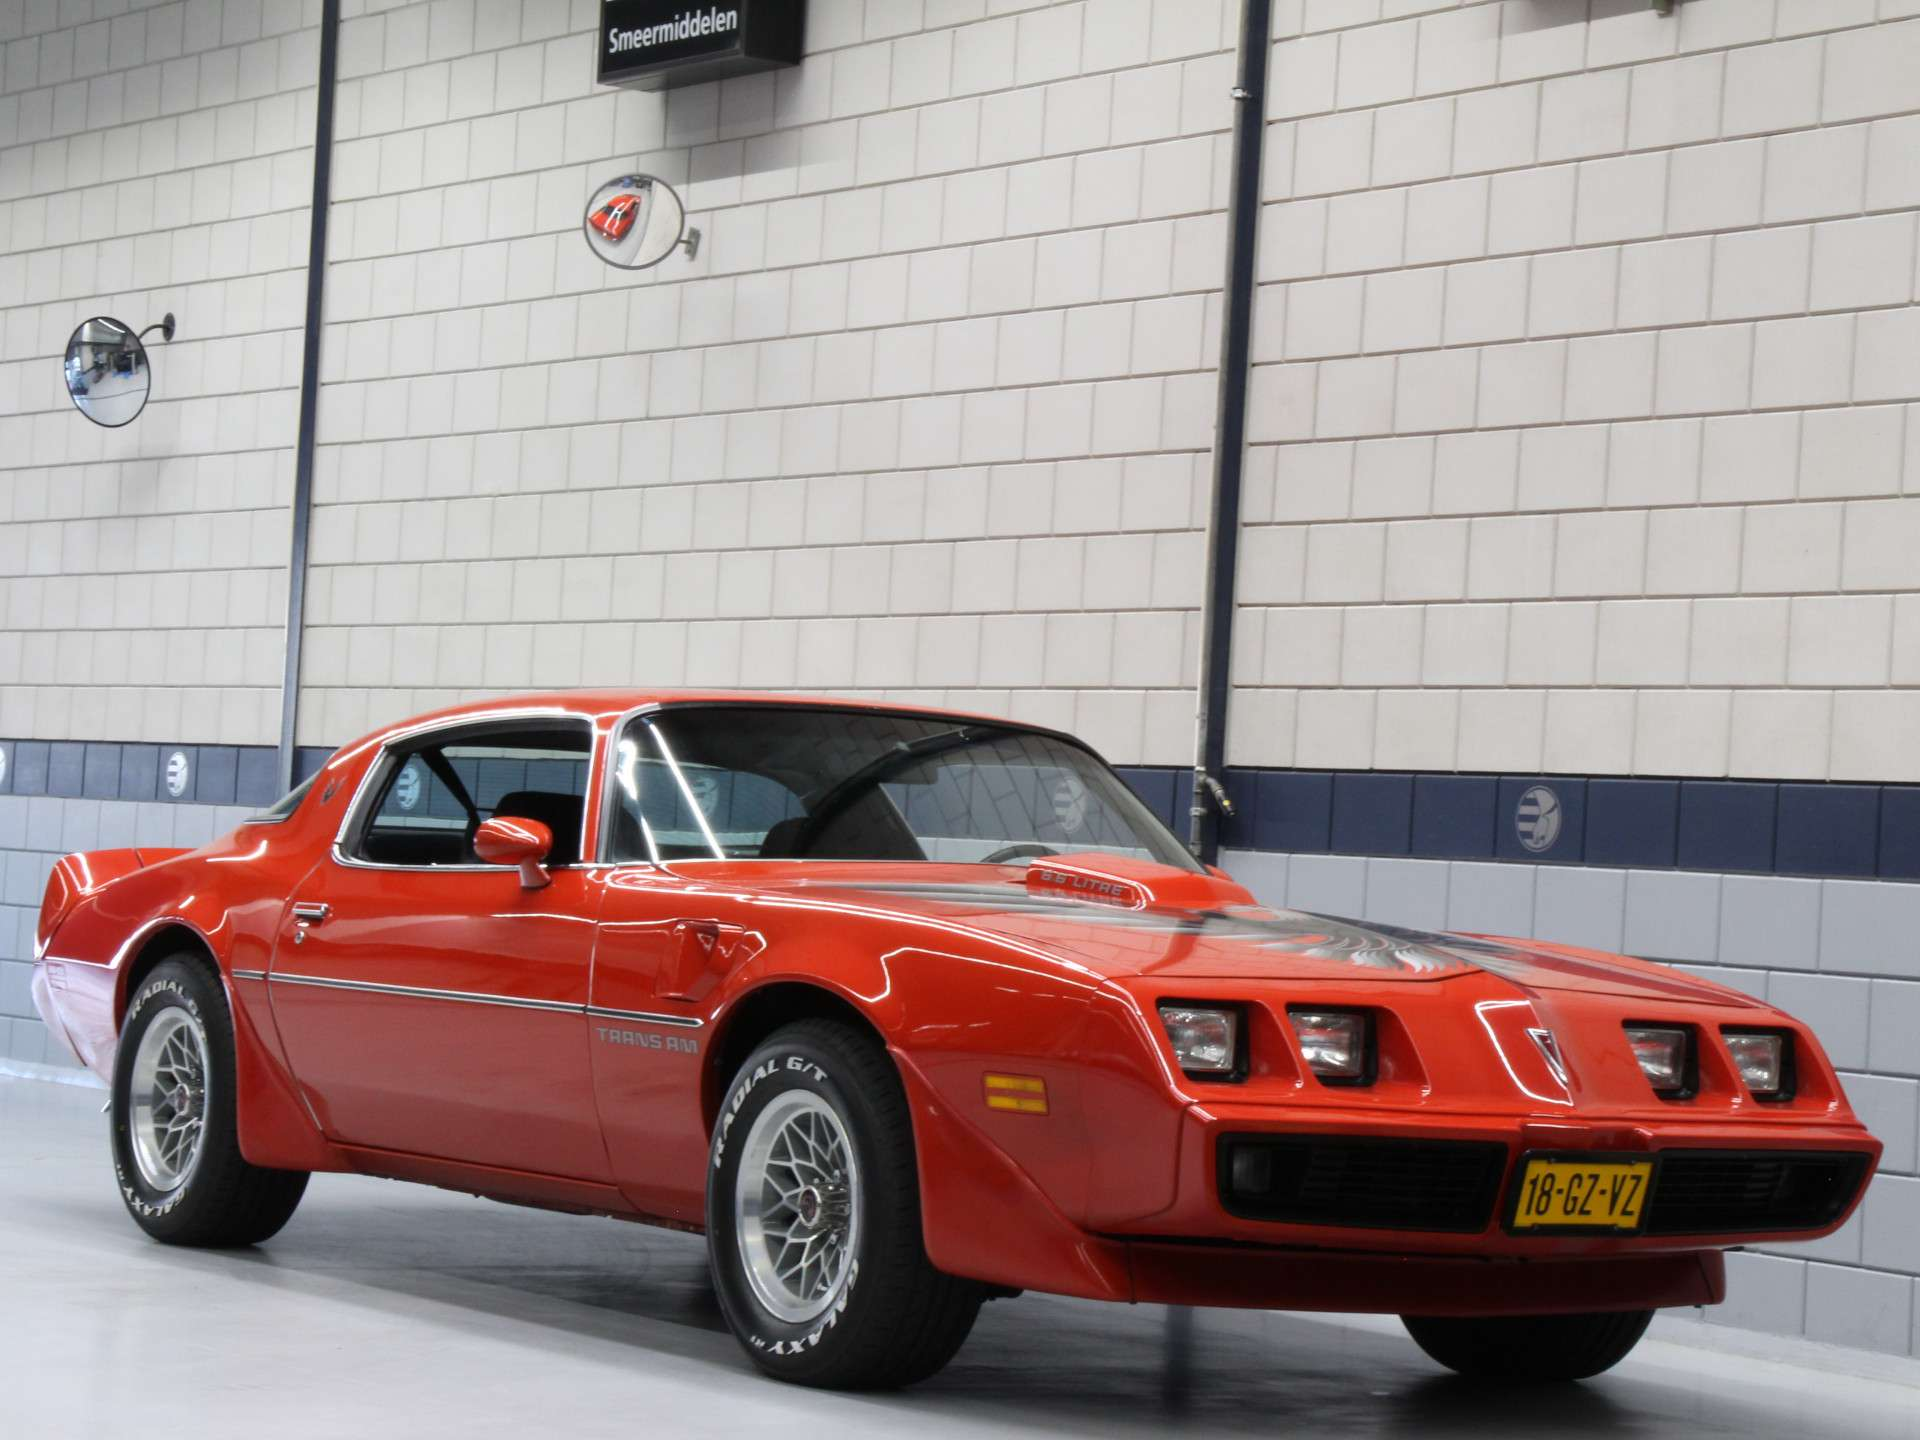 Tweedehands Pontiac Trans Am 1979 occasion